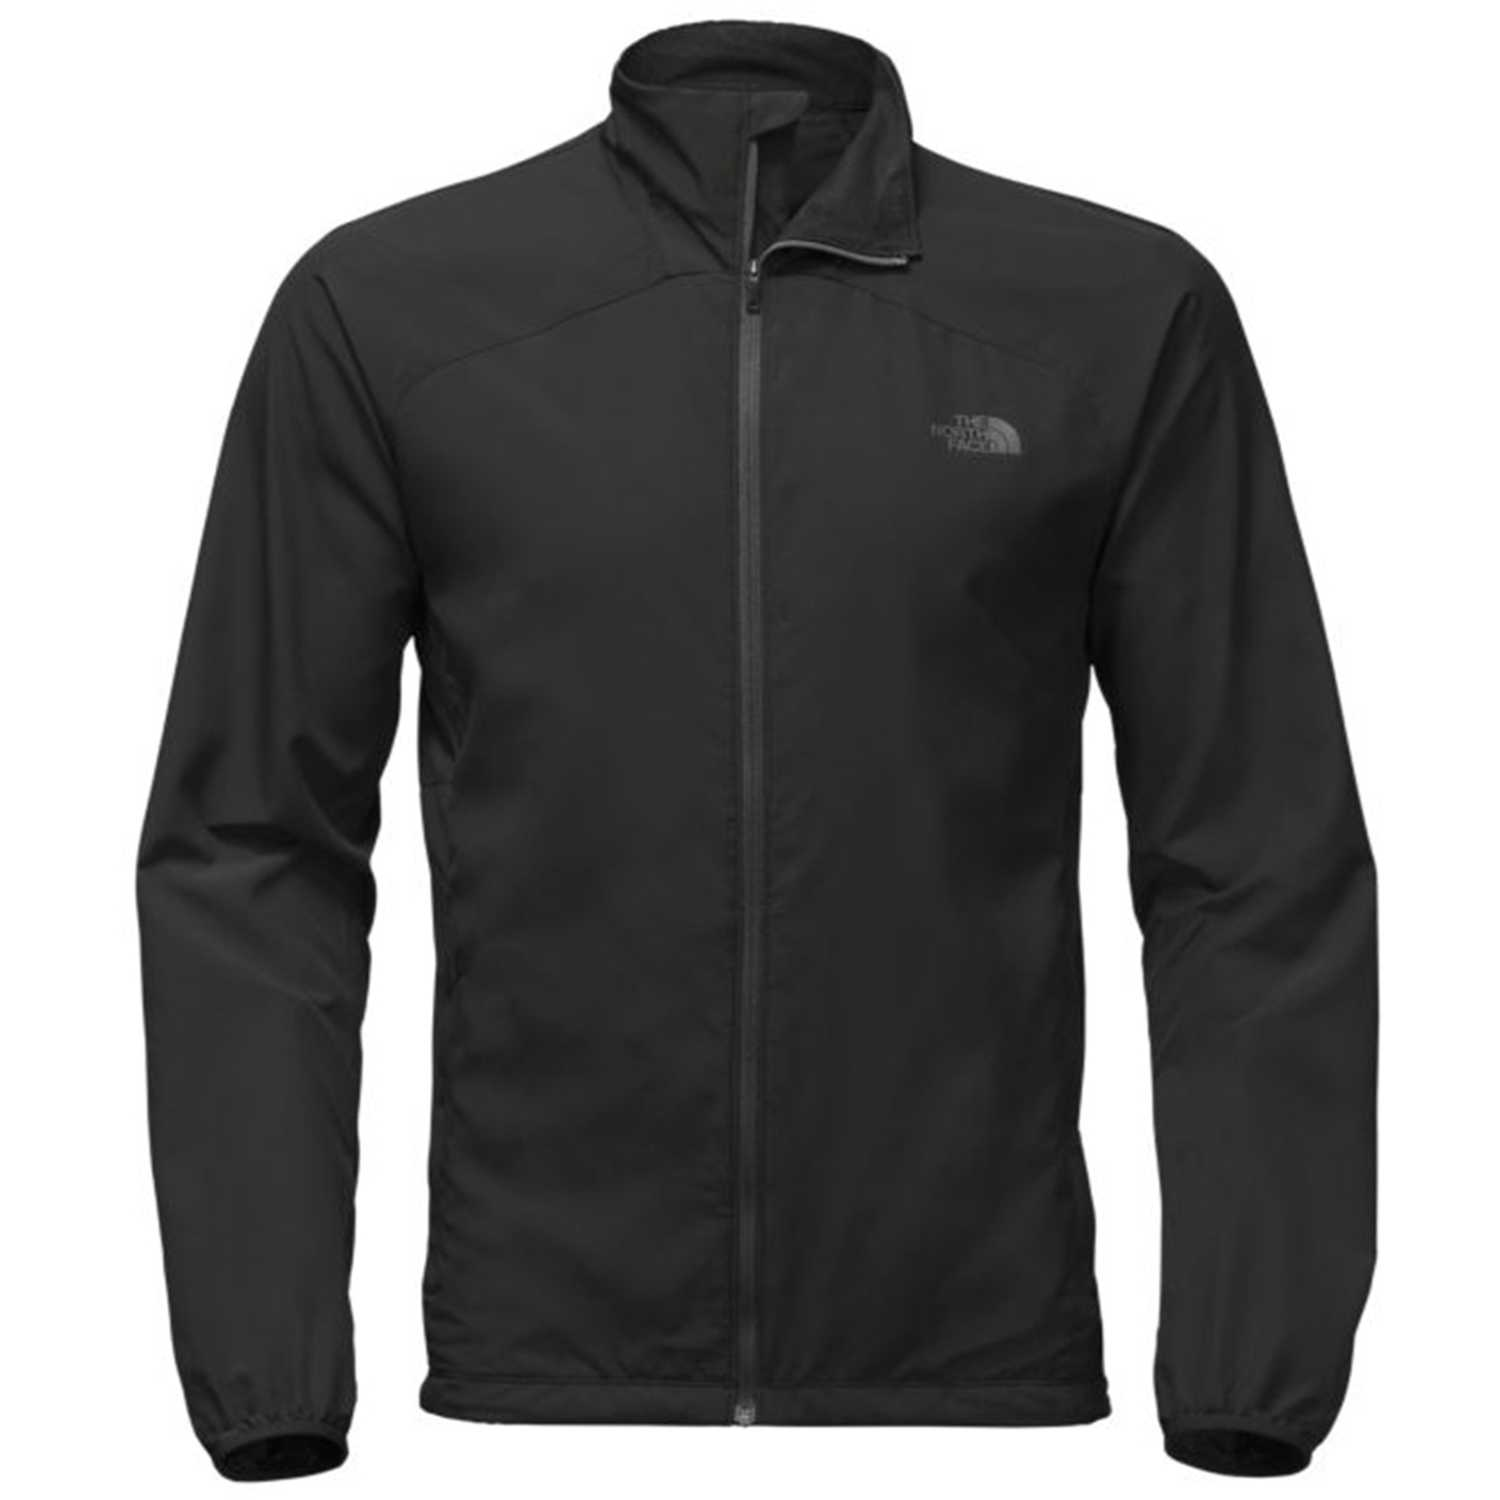 Casacas de Hombre The North Face Negro m ambition jacket